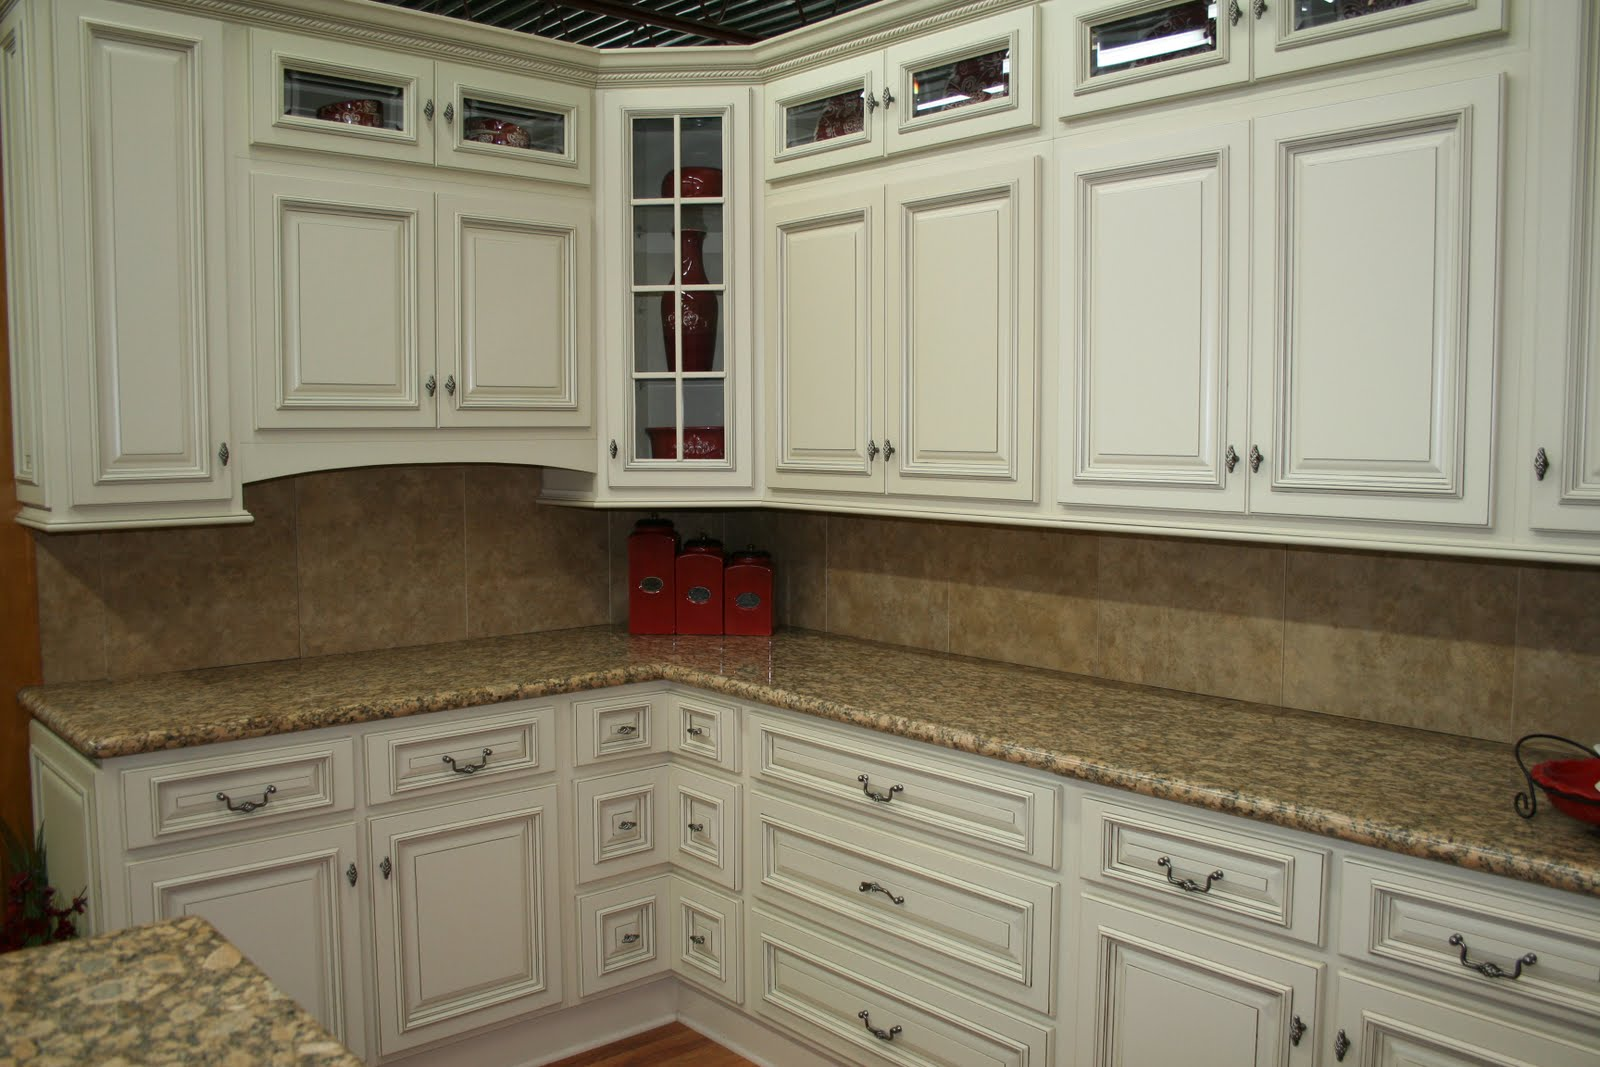 diy refacing kitchen cabinets ideas kitchen cabinets ideas kitchen cabinet refacing ideas white easy endeavor to with